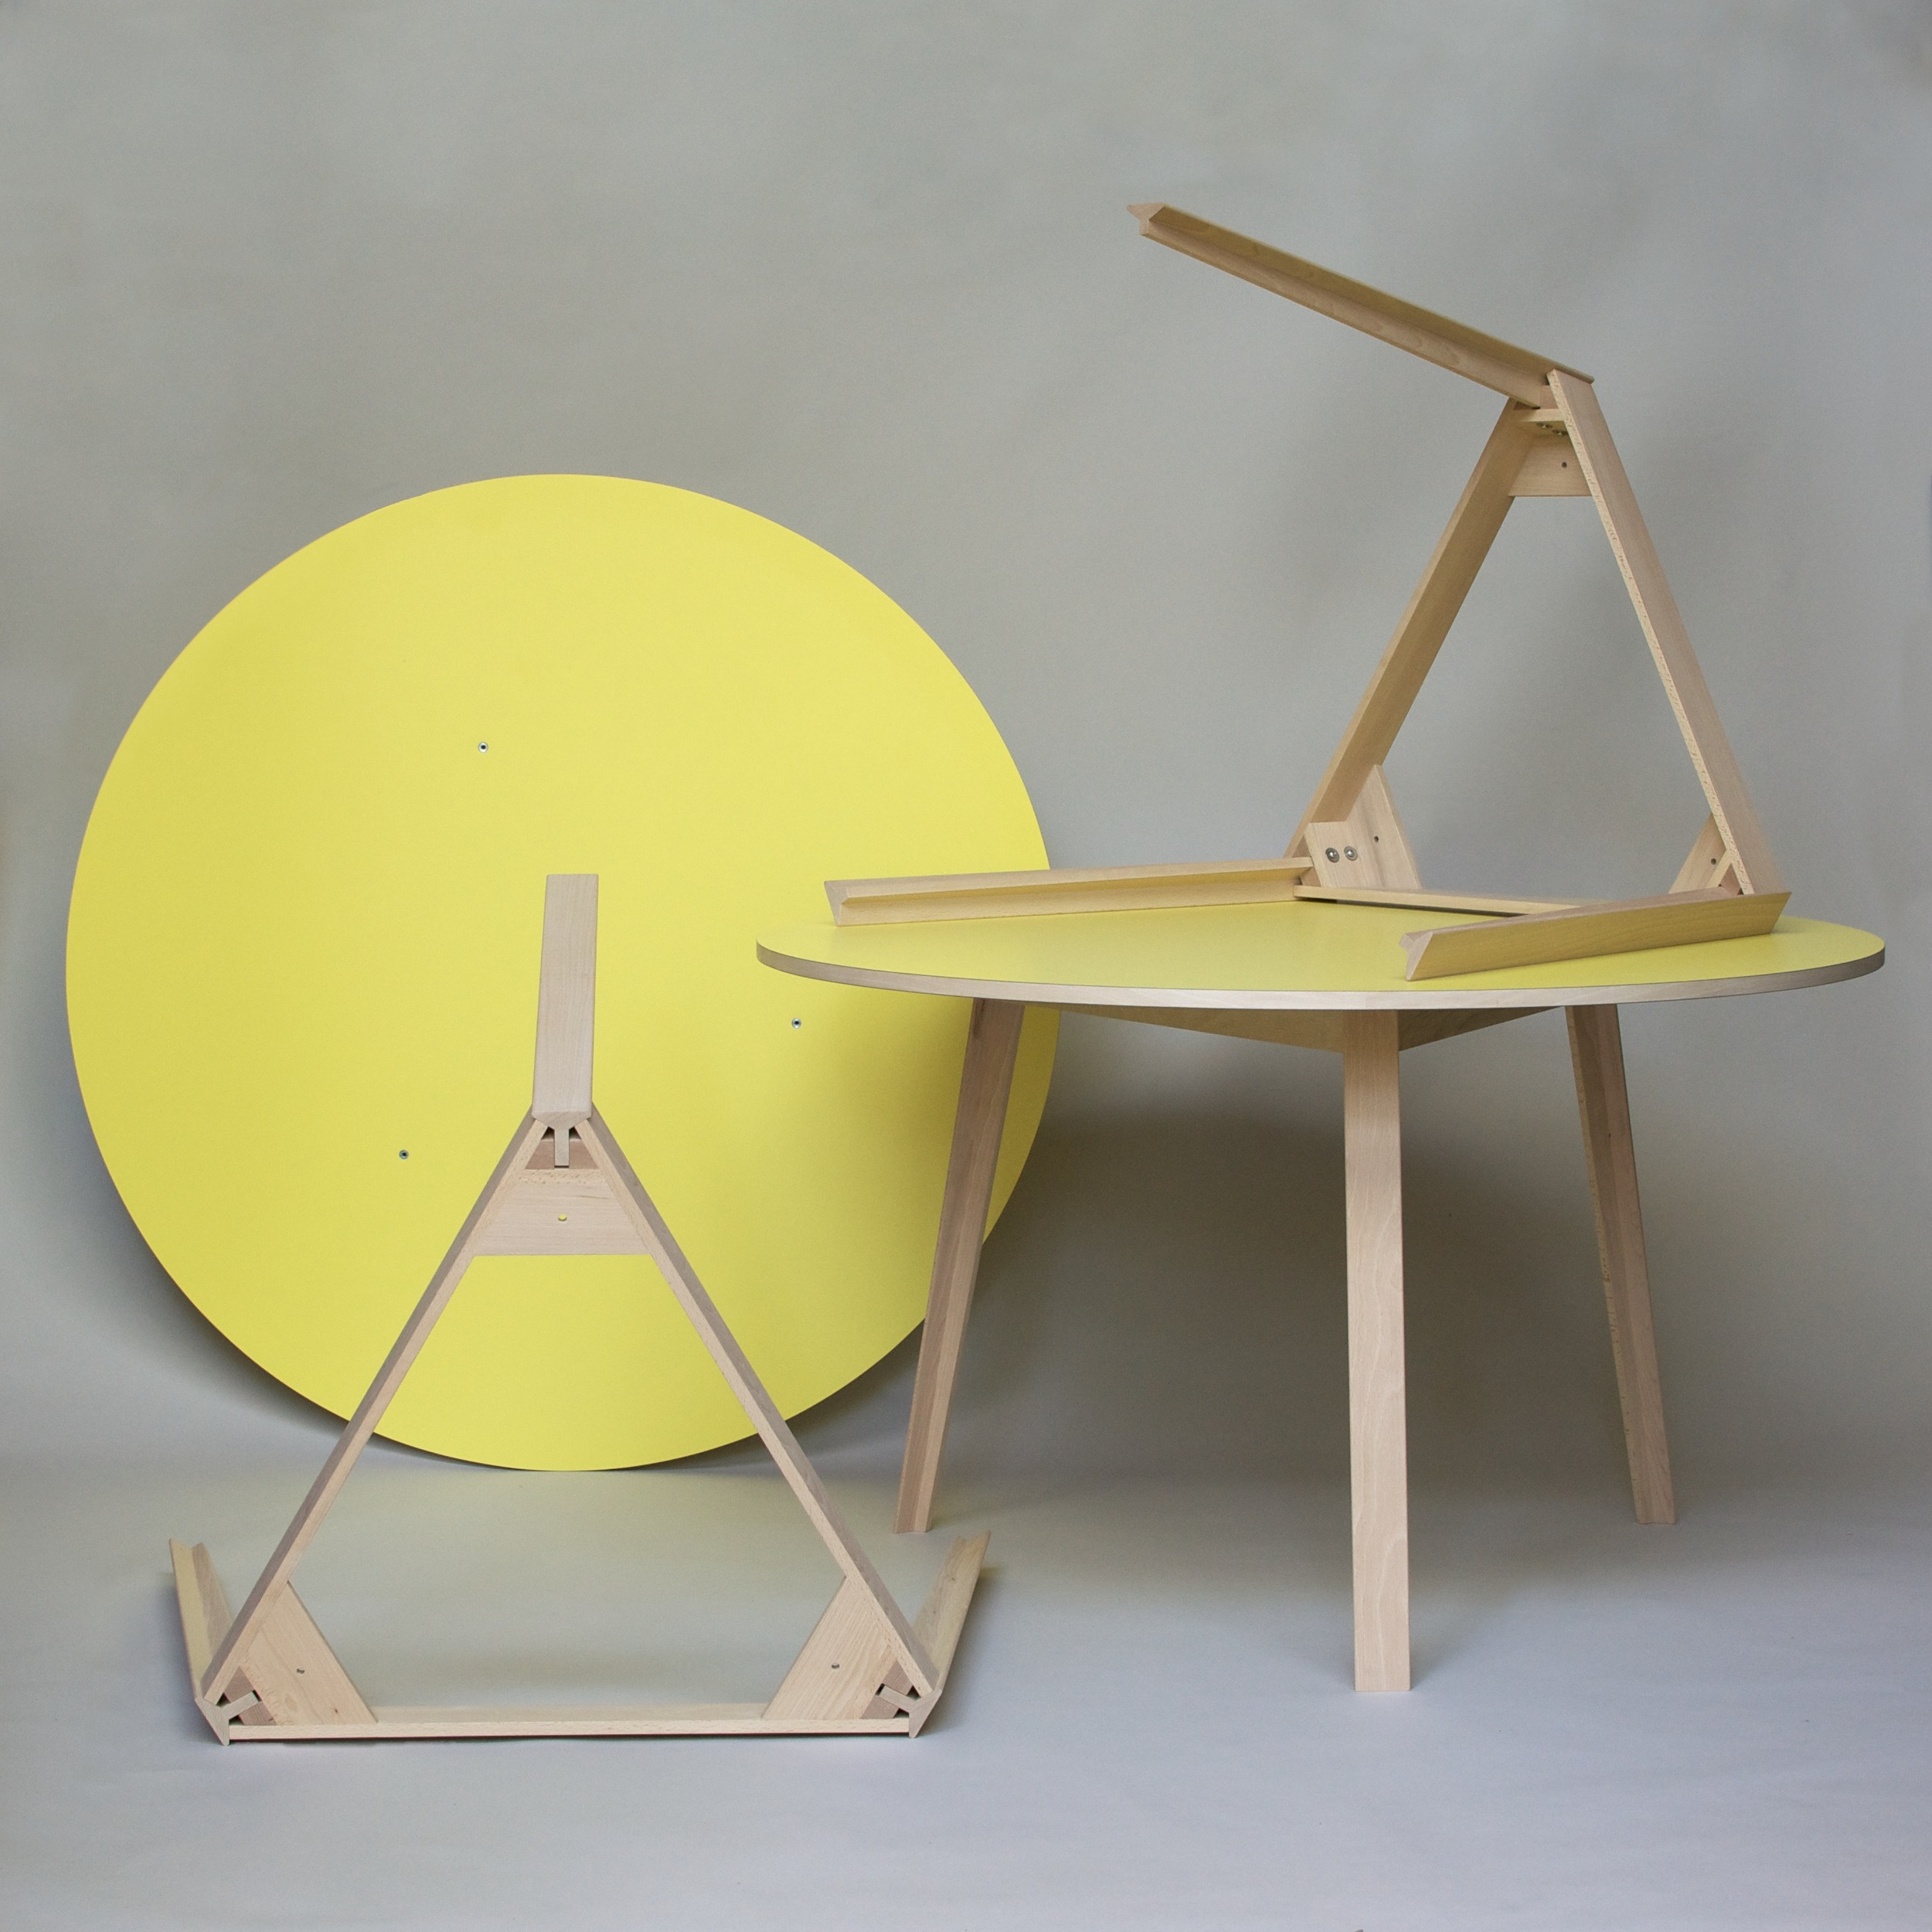 WO circular table  July 2014  The first batch of  circular tables commissioned by Wolff Olins for their London studios.